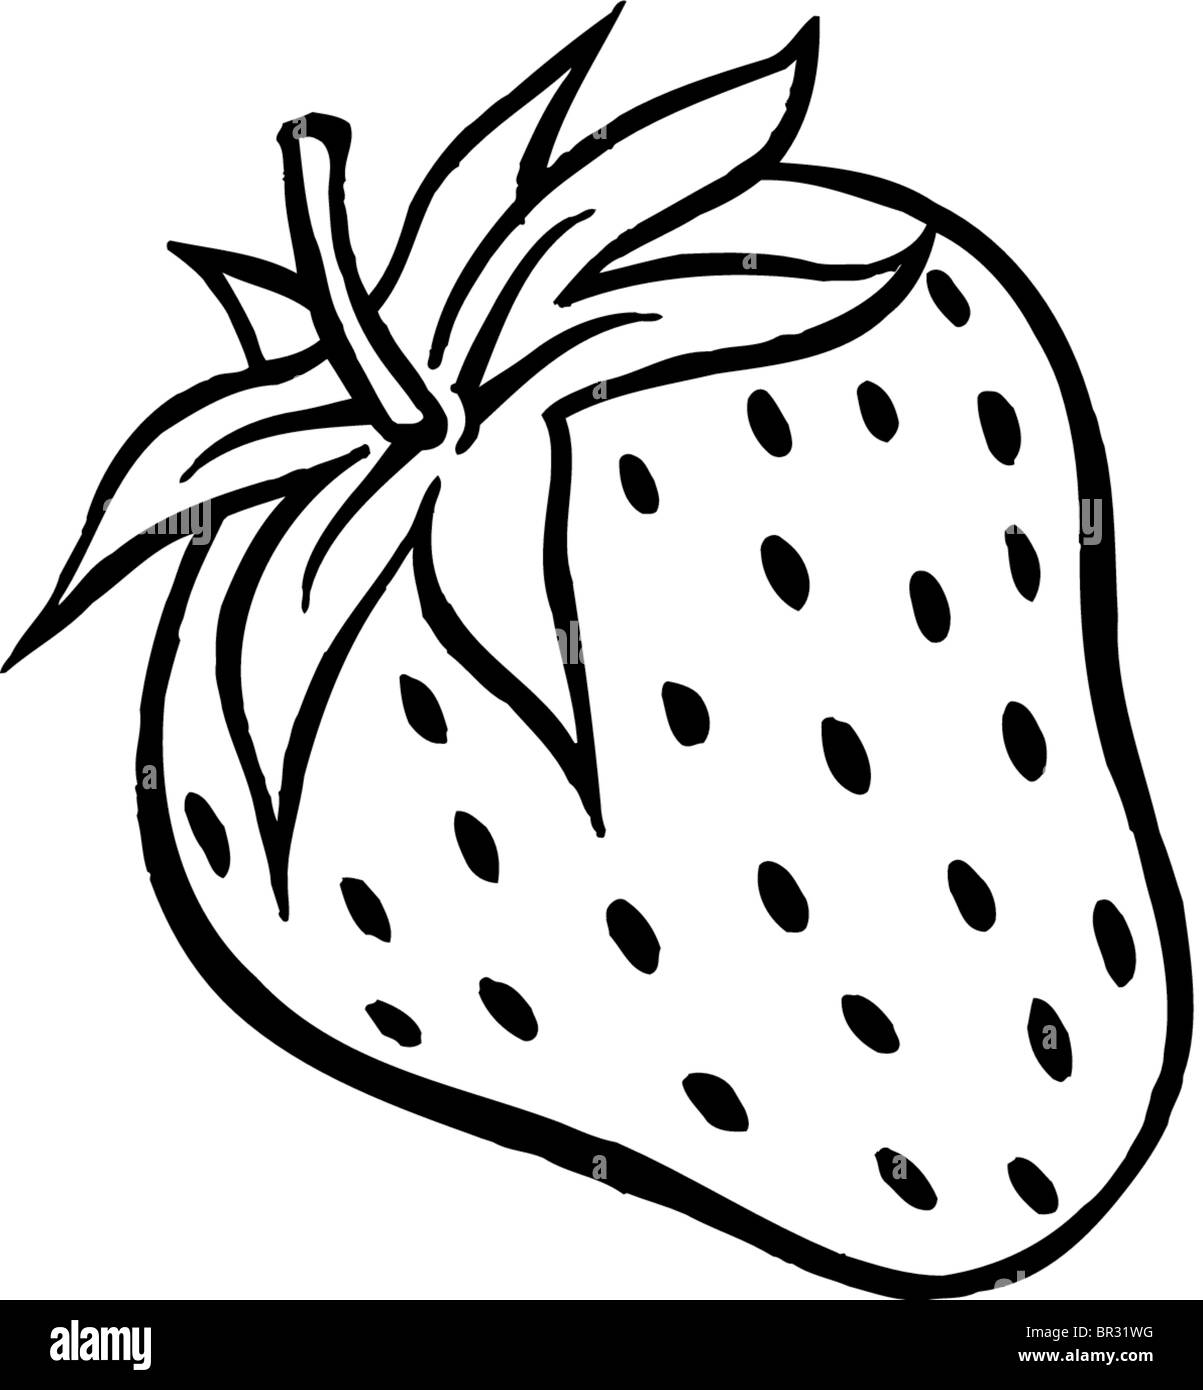 A black and white drawing of a plump strawberry Stock Photo ... for Clipart Strawberry Black And White  75sfw